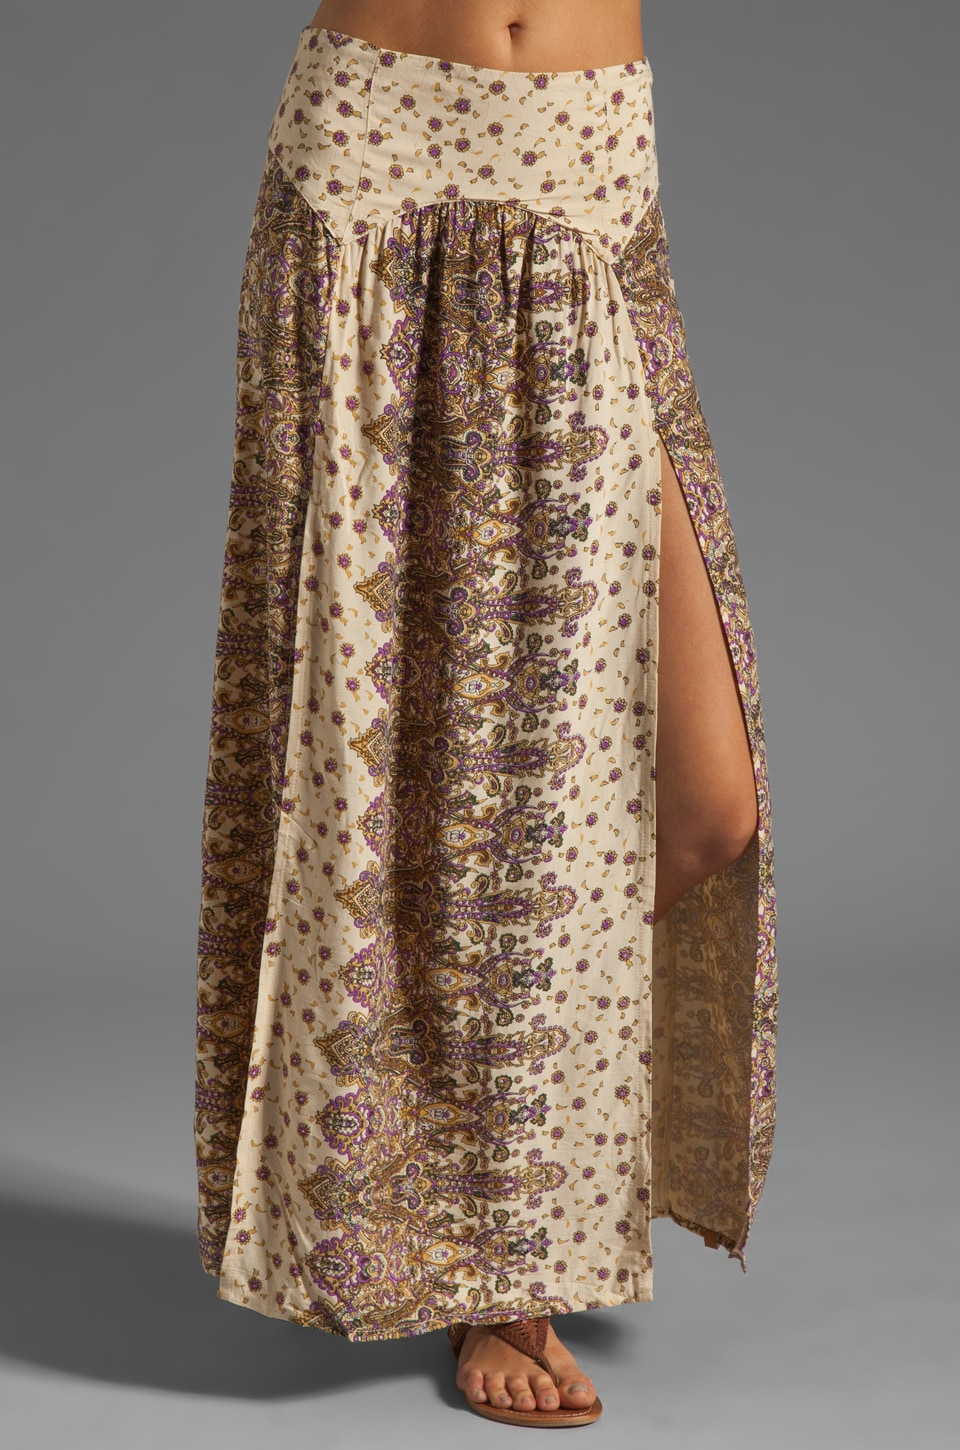 Tallow Mystere Maxi Skirt in Paisley